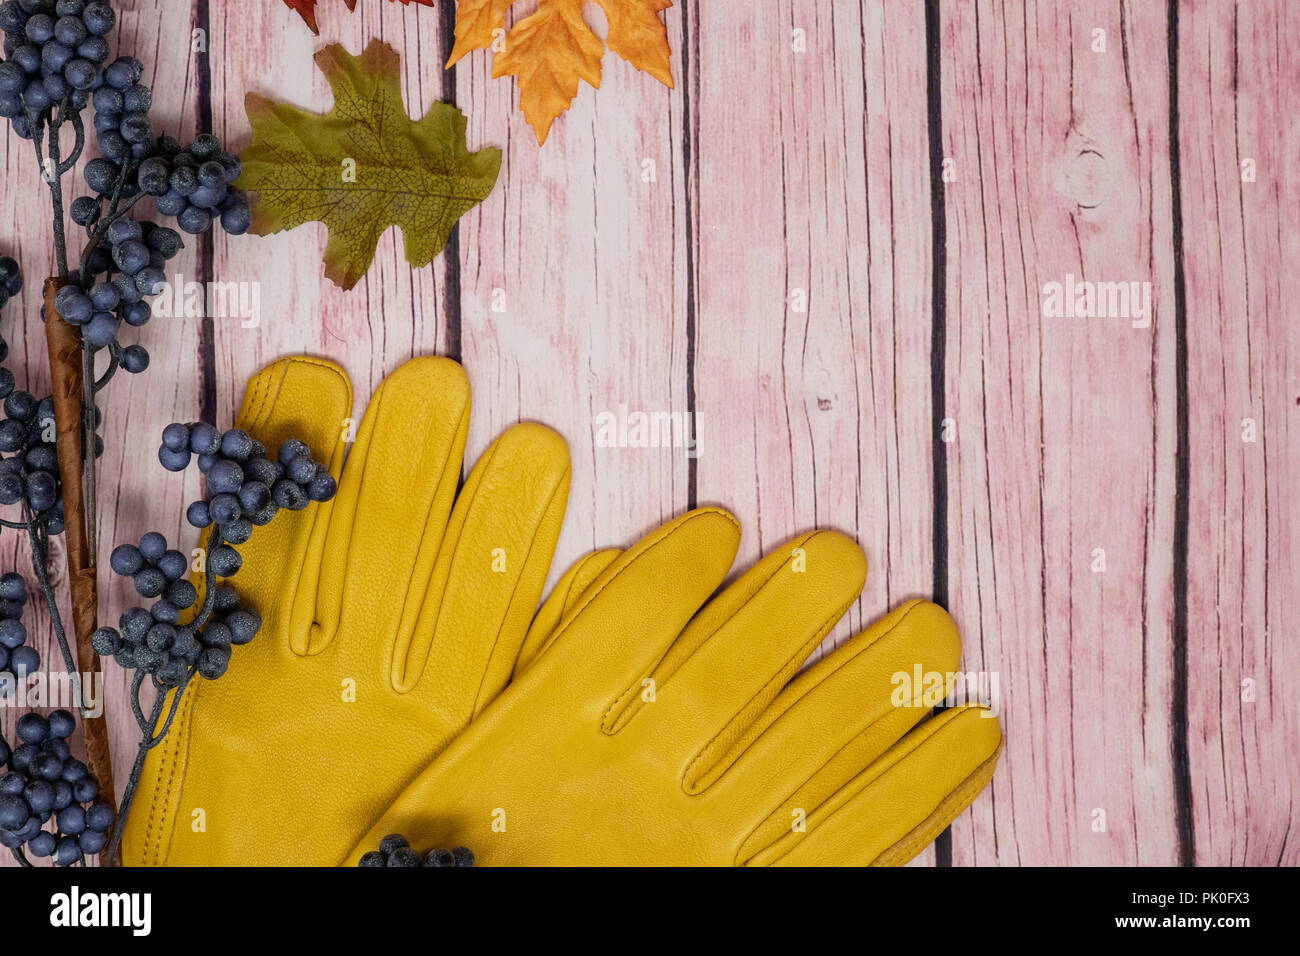 Beautiful fall autumn gardening scene, sunflowers, acorns, leaves and yellow gardening gloves over a pink wood background - Stock Image